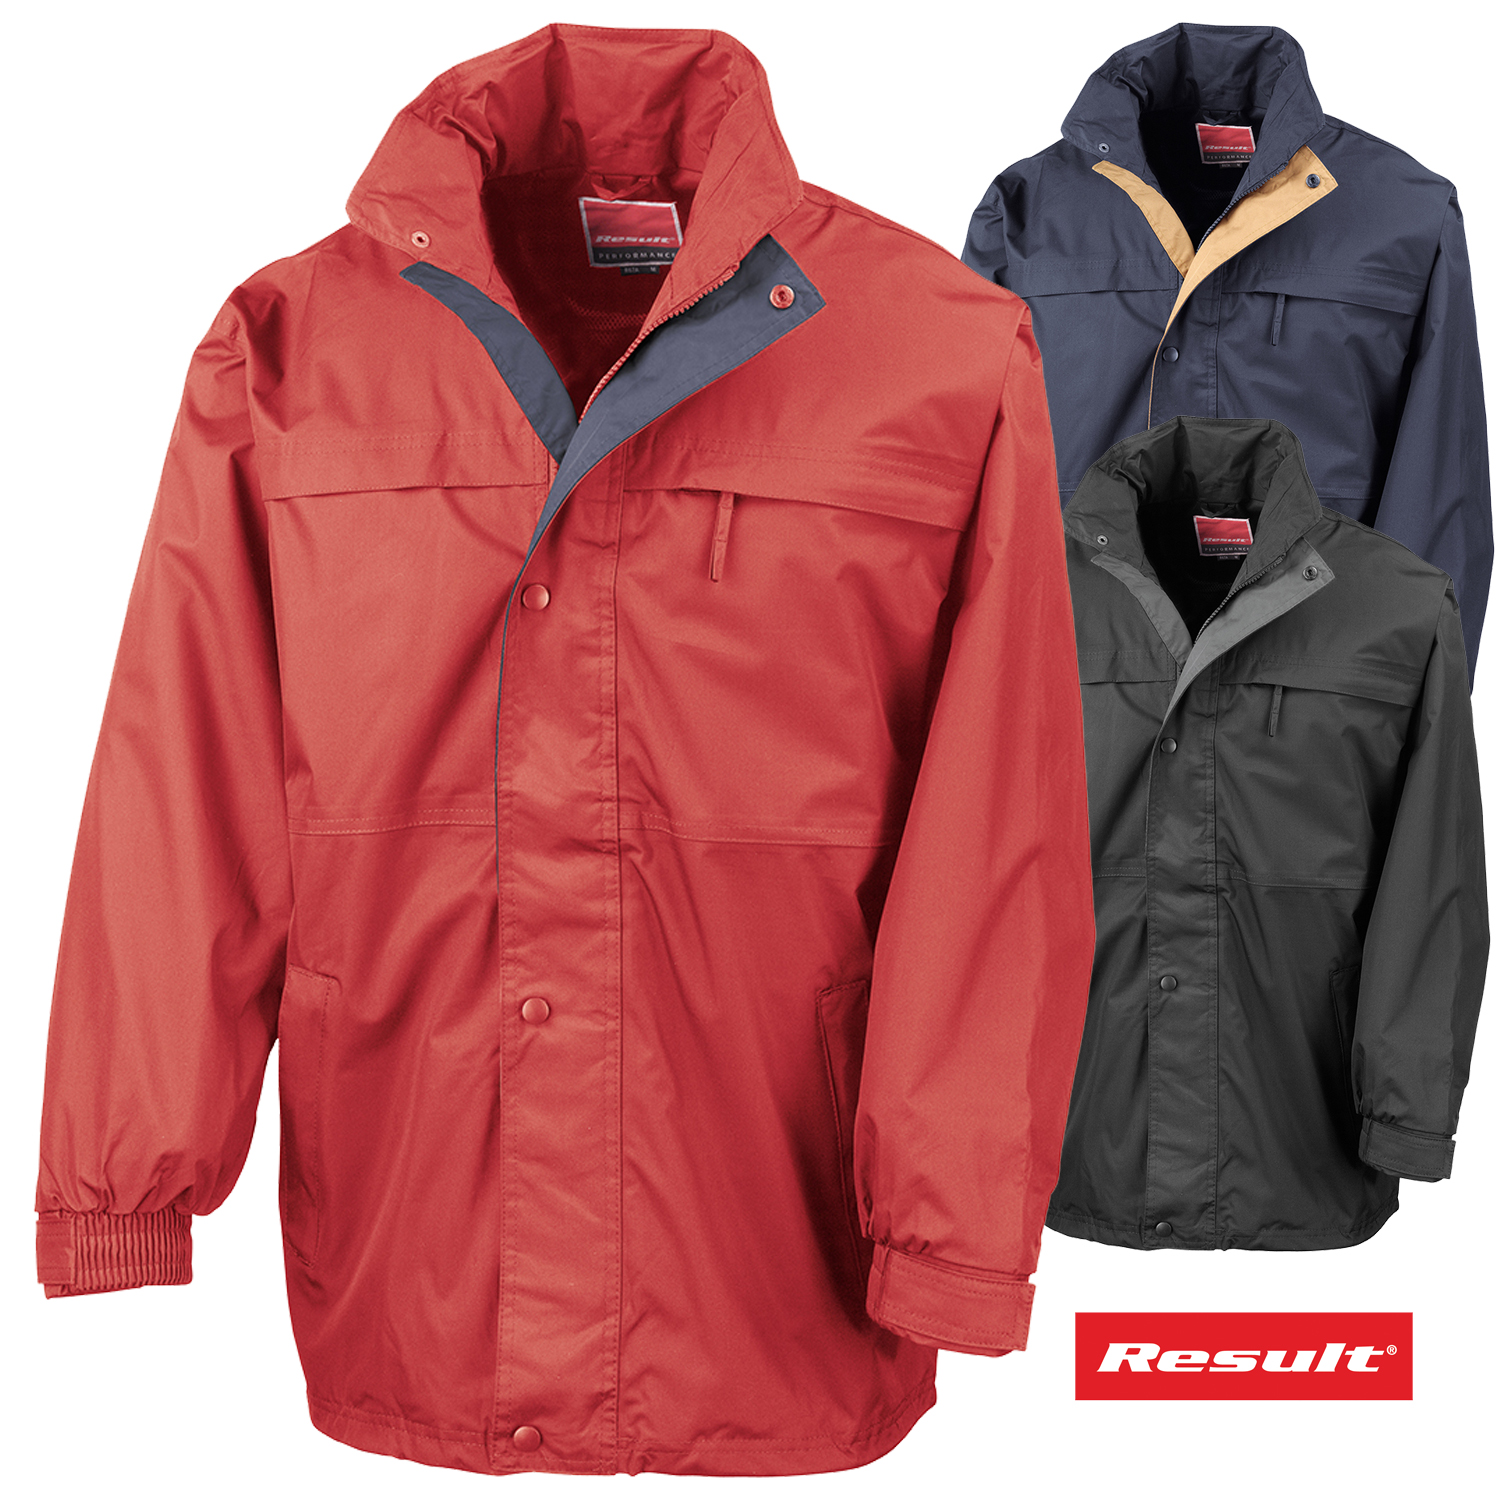 c68321541ee2 Details about Result Mens Winter Mid Weight Wind Rain Outdoor Jacket  Concealed Hooded Coat New